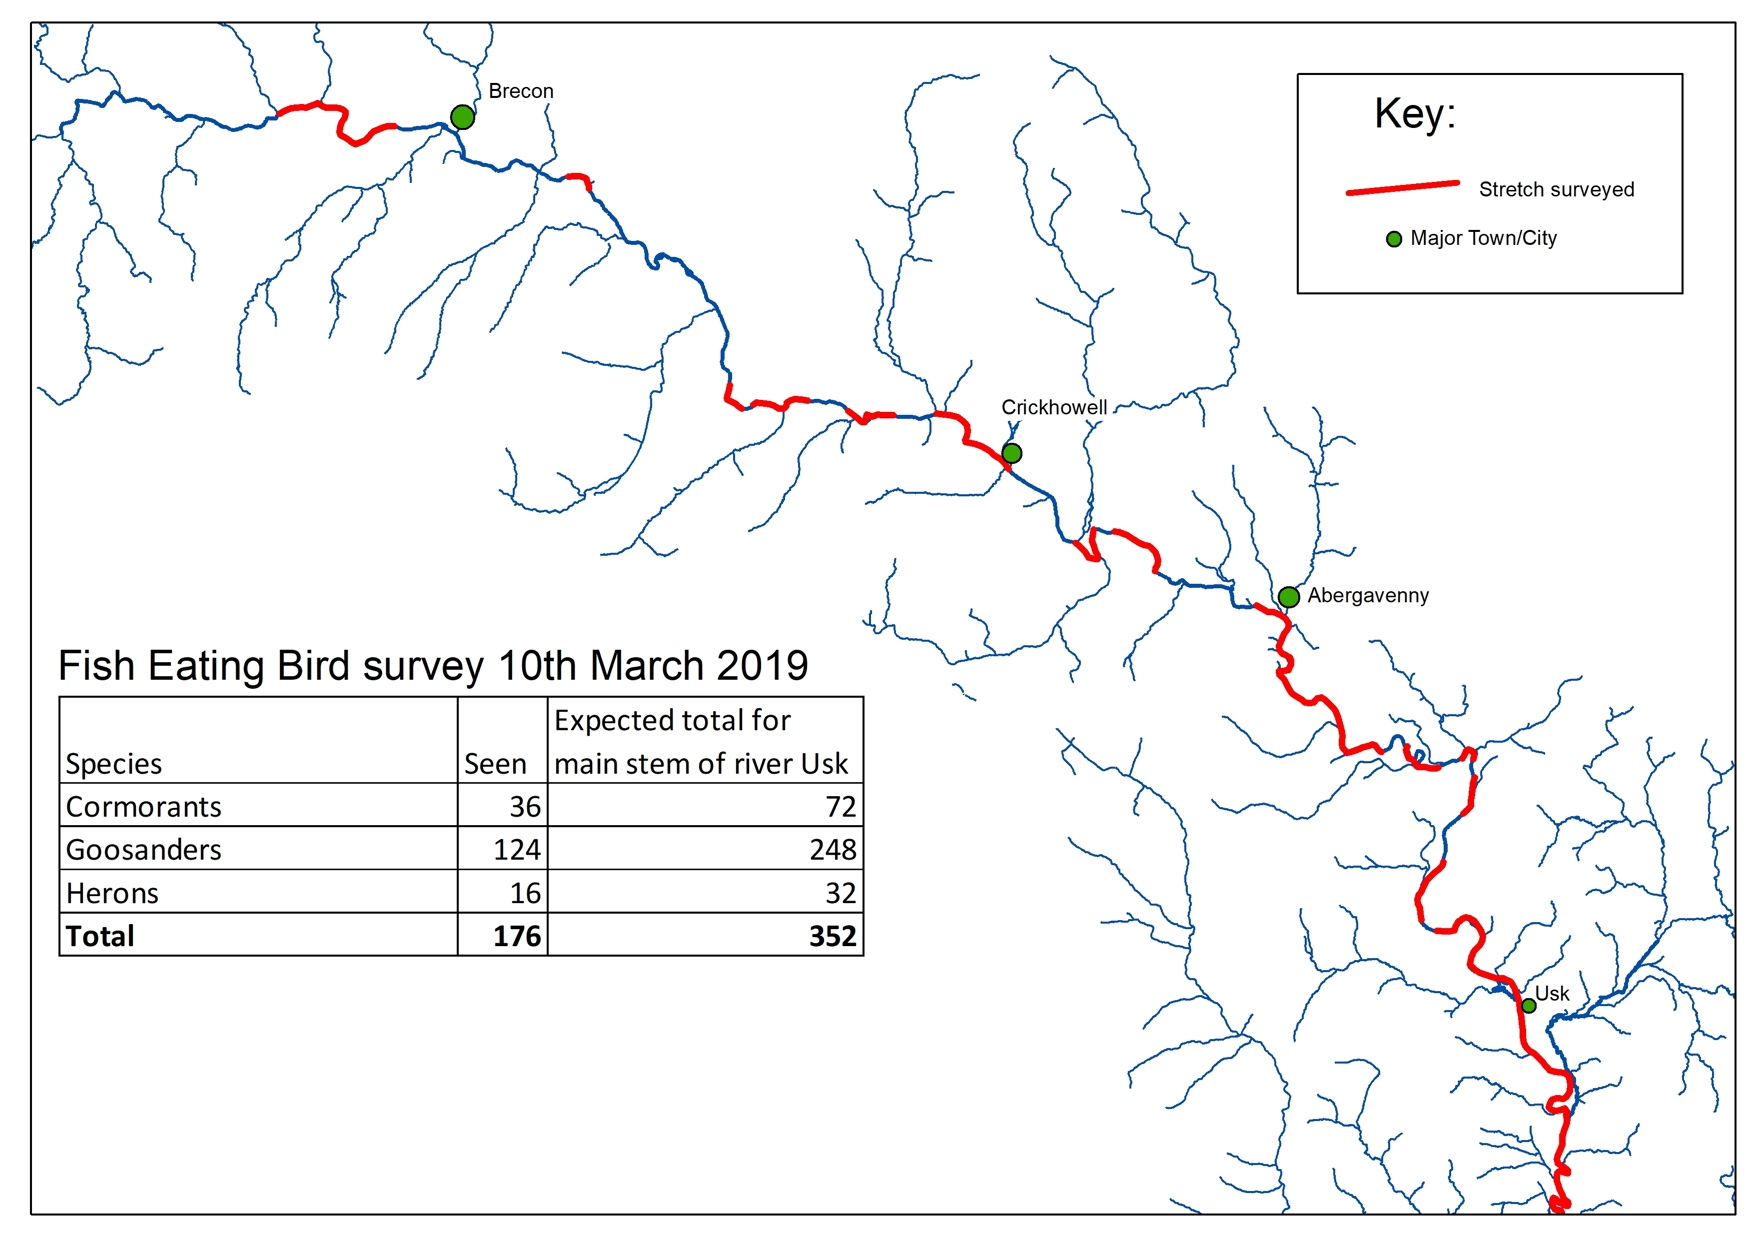 The results of the river Usk FEB count on 10th March 2019